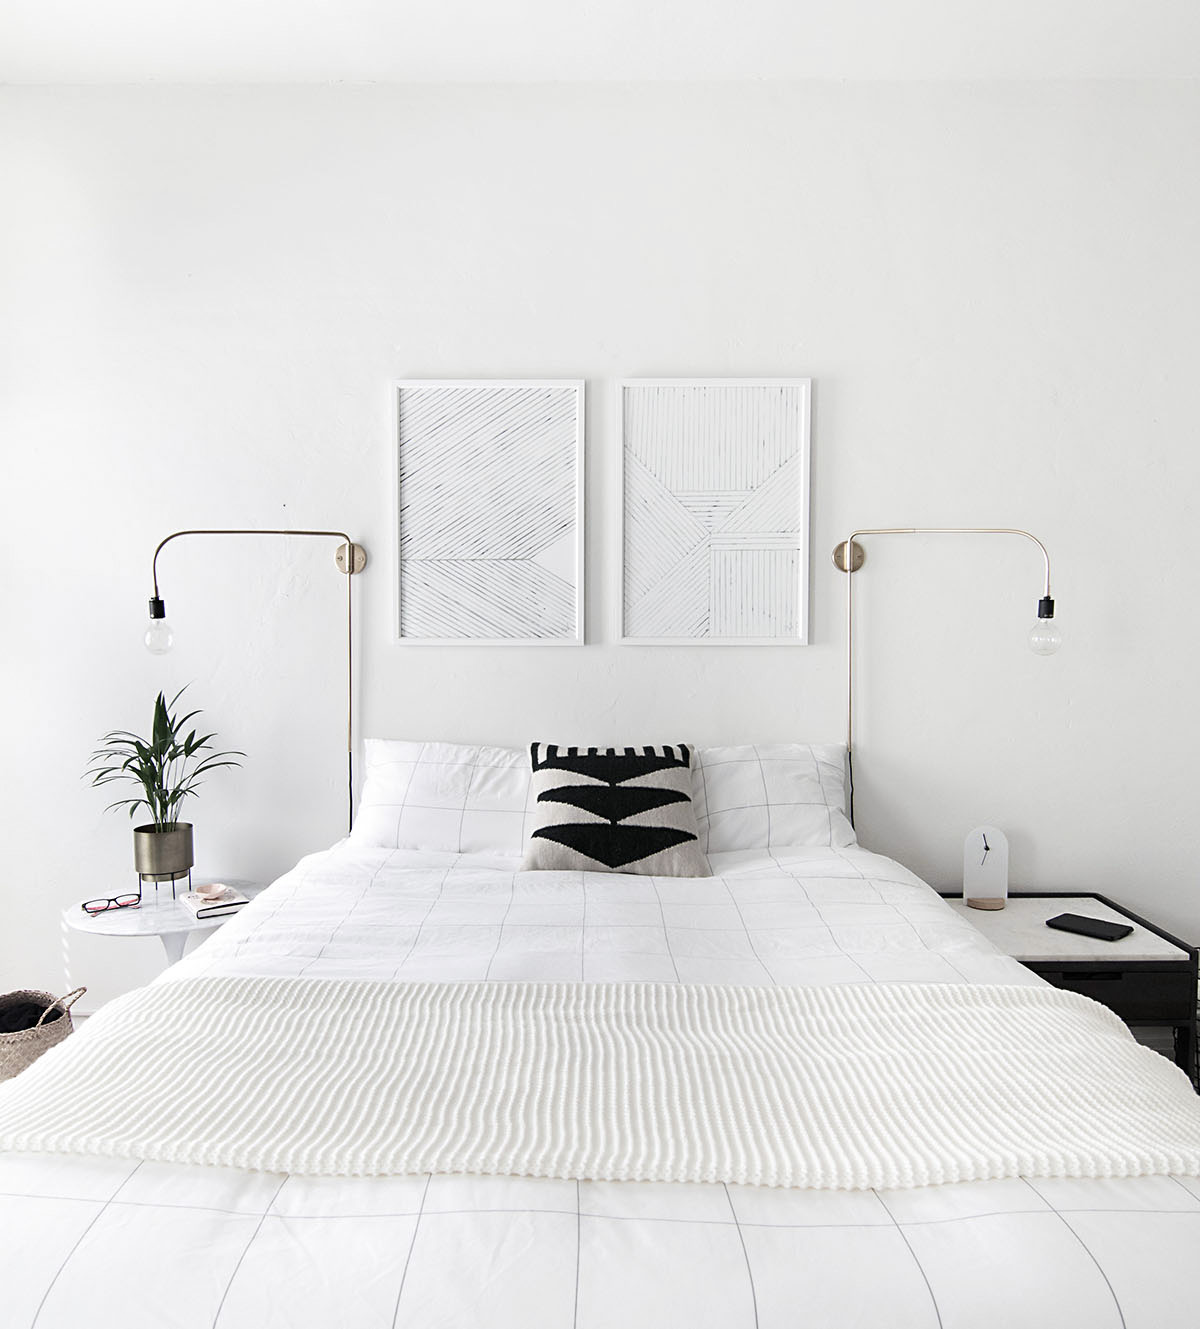 Art Room Bedroom: How To Achieve A Minimal Scandinavian Bedroom